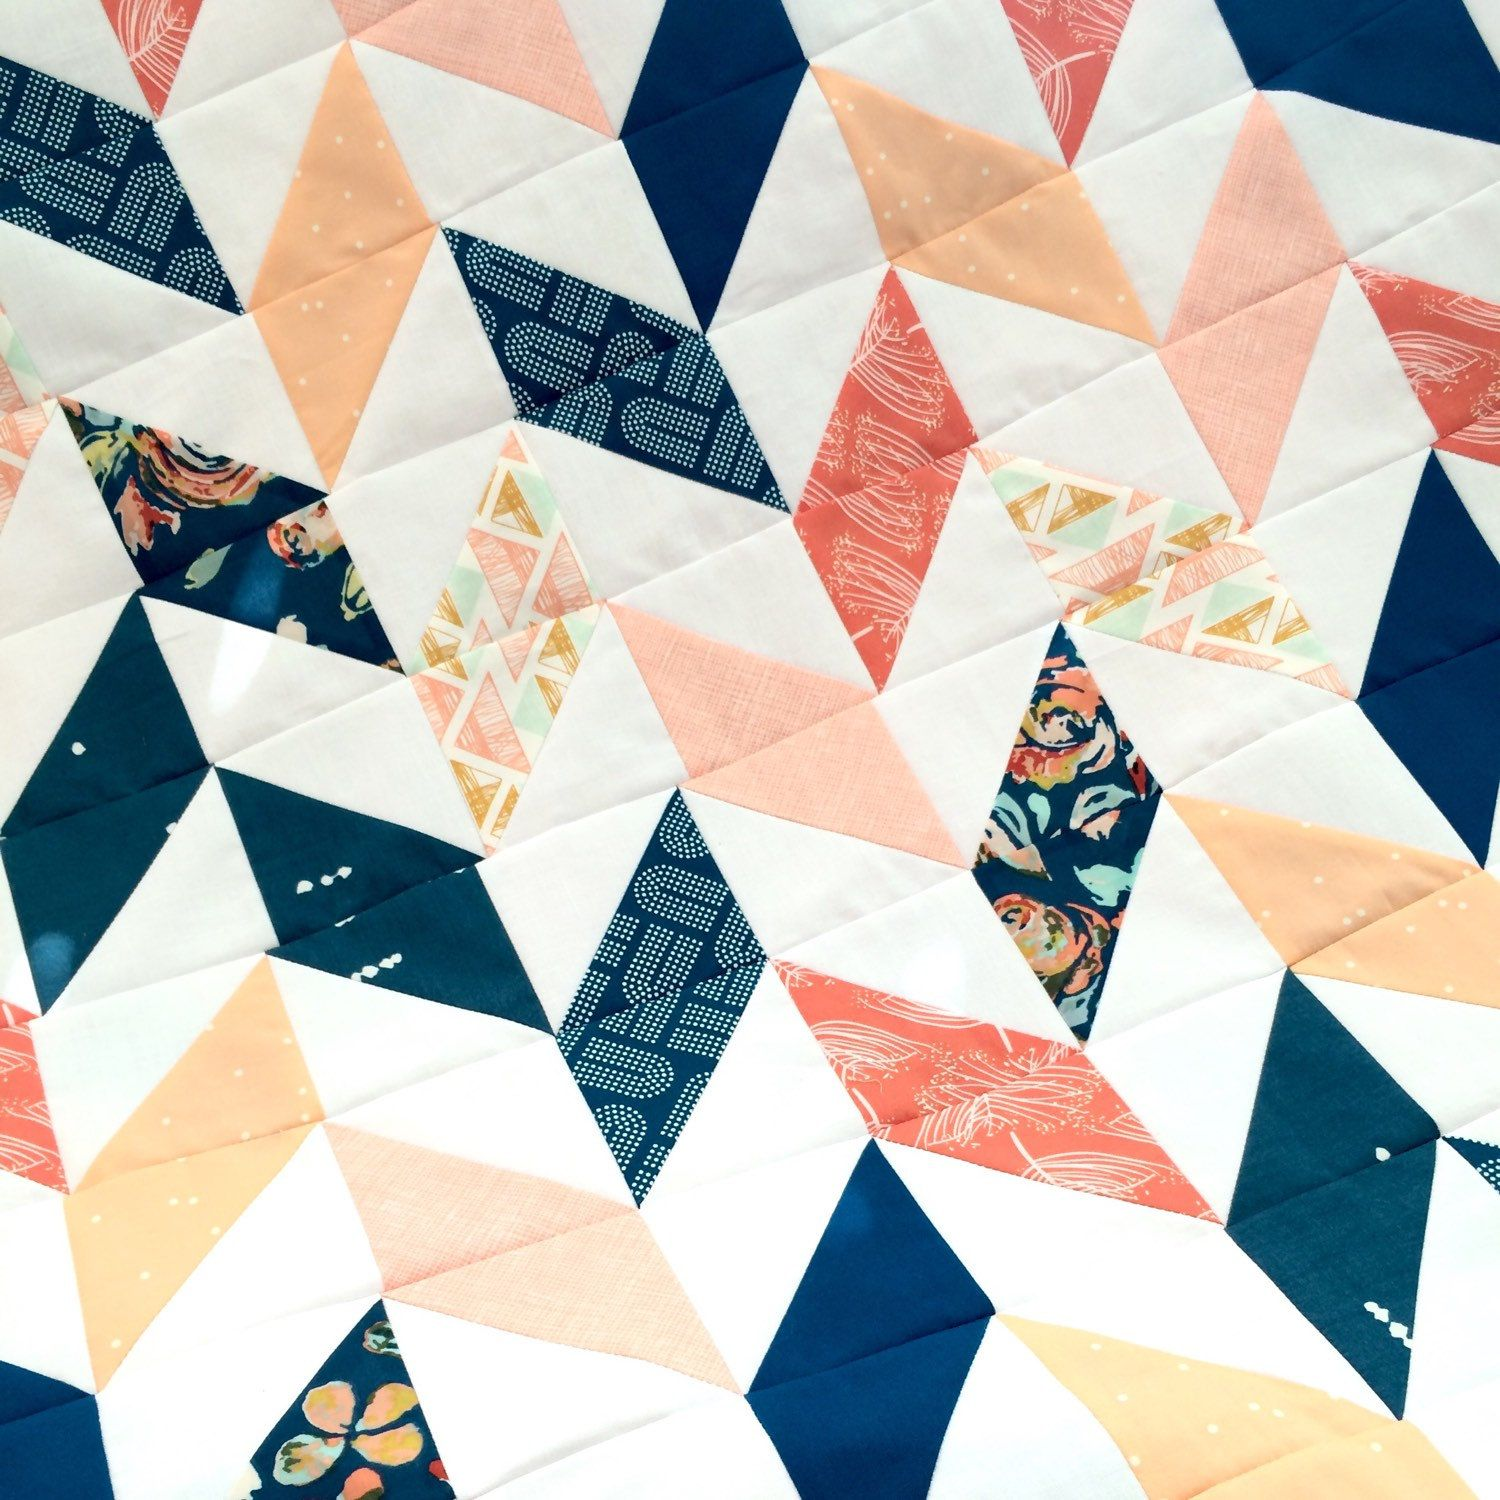 Cockerels Are Scattered All Over This Fabric Made From: My Customer's Have The Best Choice In Fabric Combos And